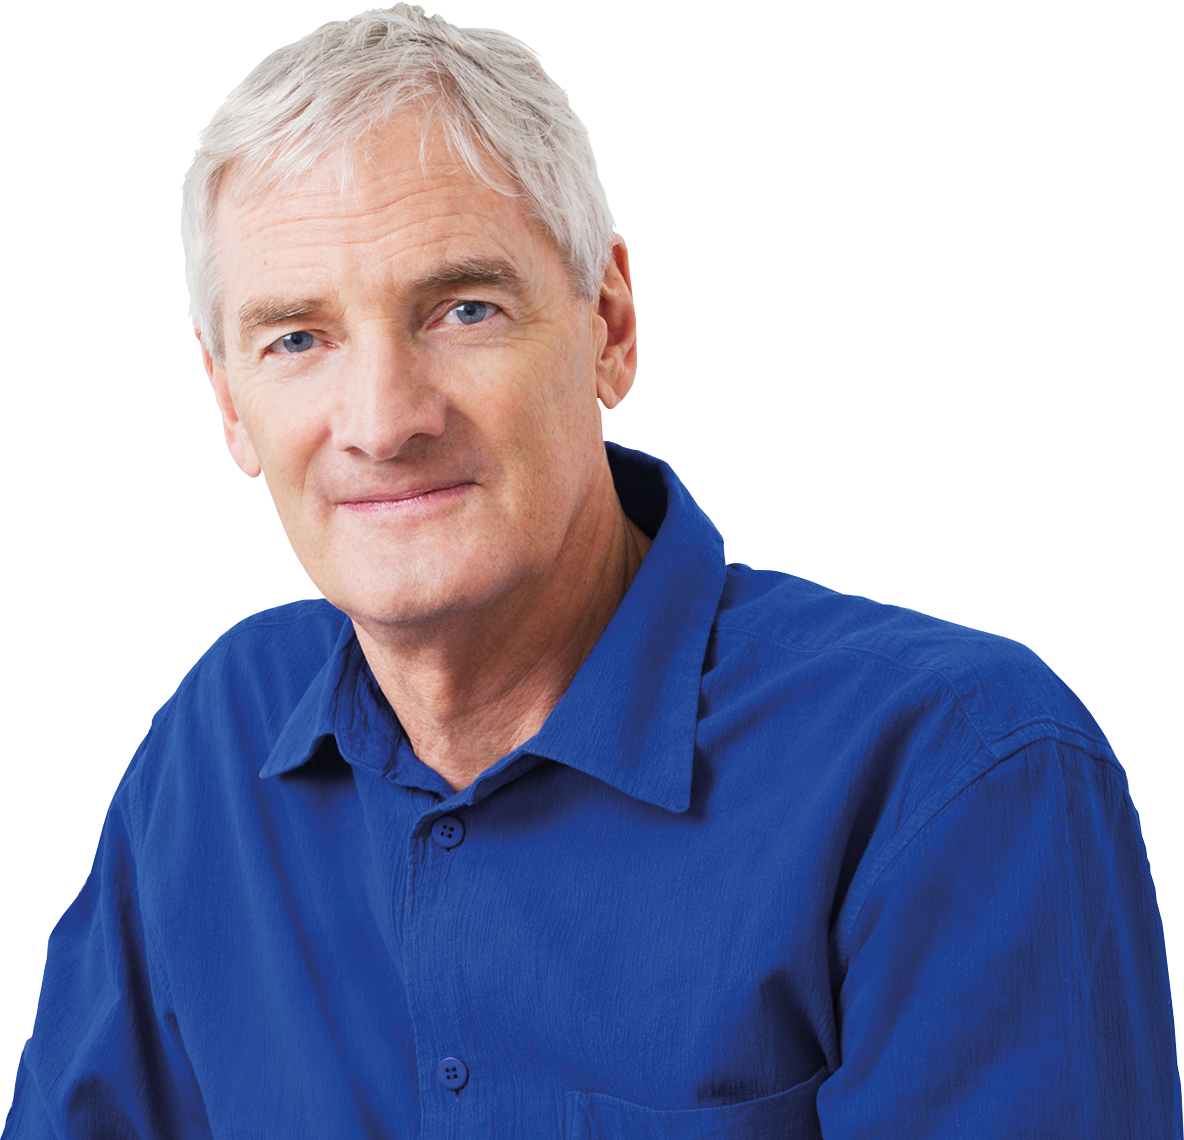 An image of James Dyson